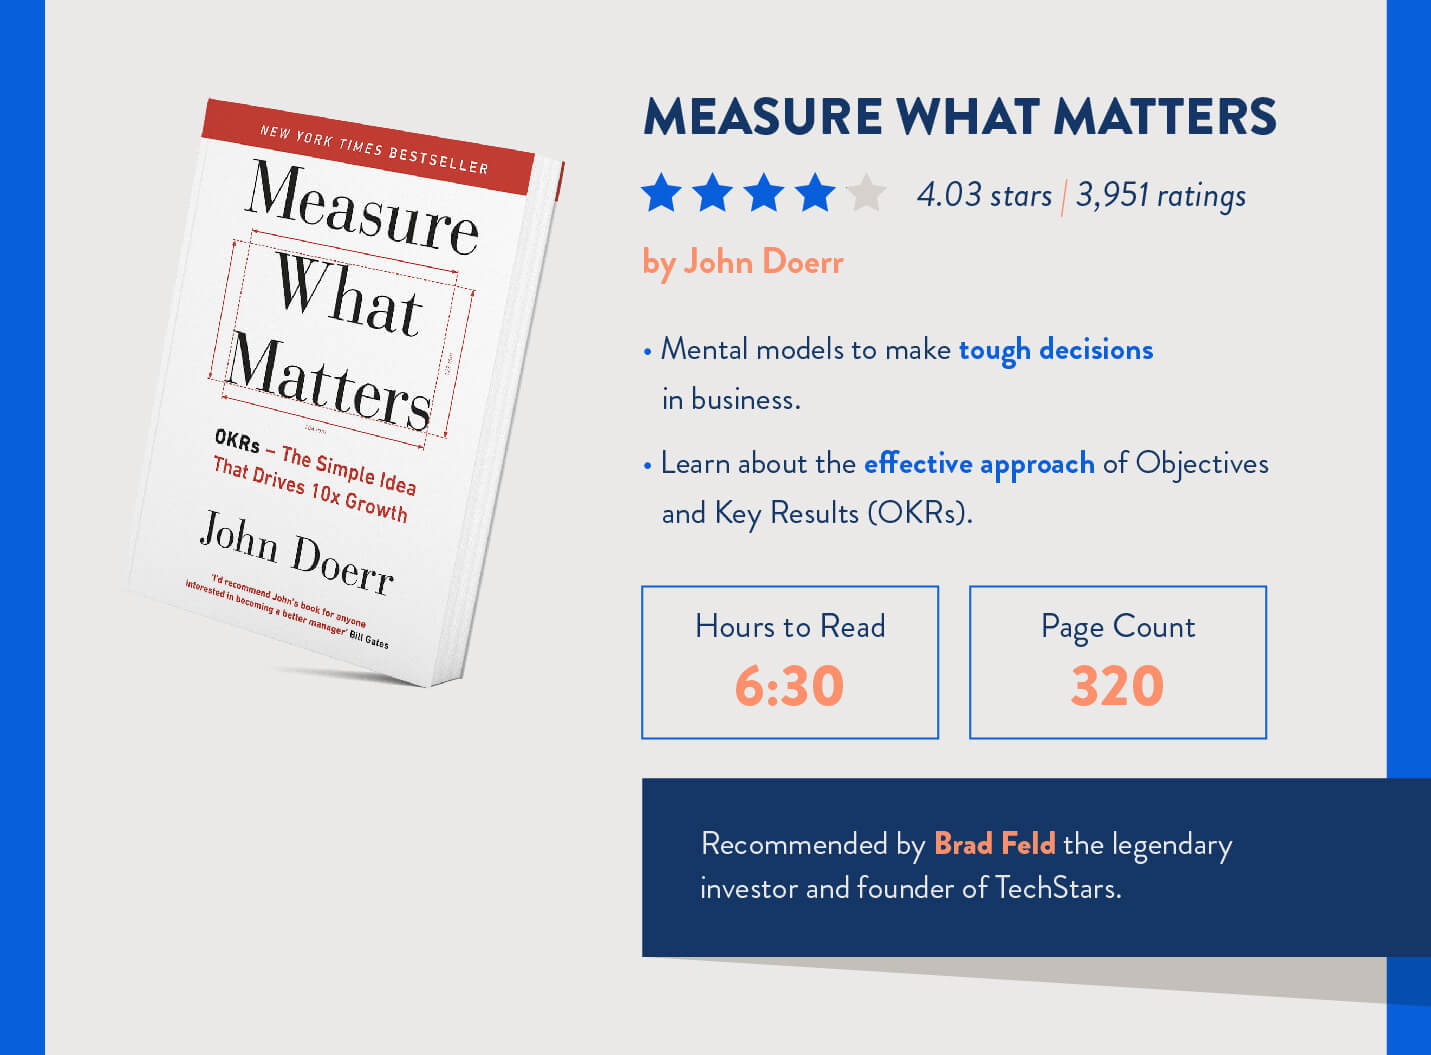 Measure what matters marketing book by john doerr about OKR and recommended by investor brad feld